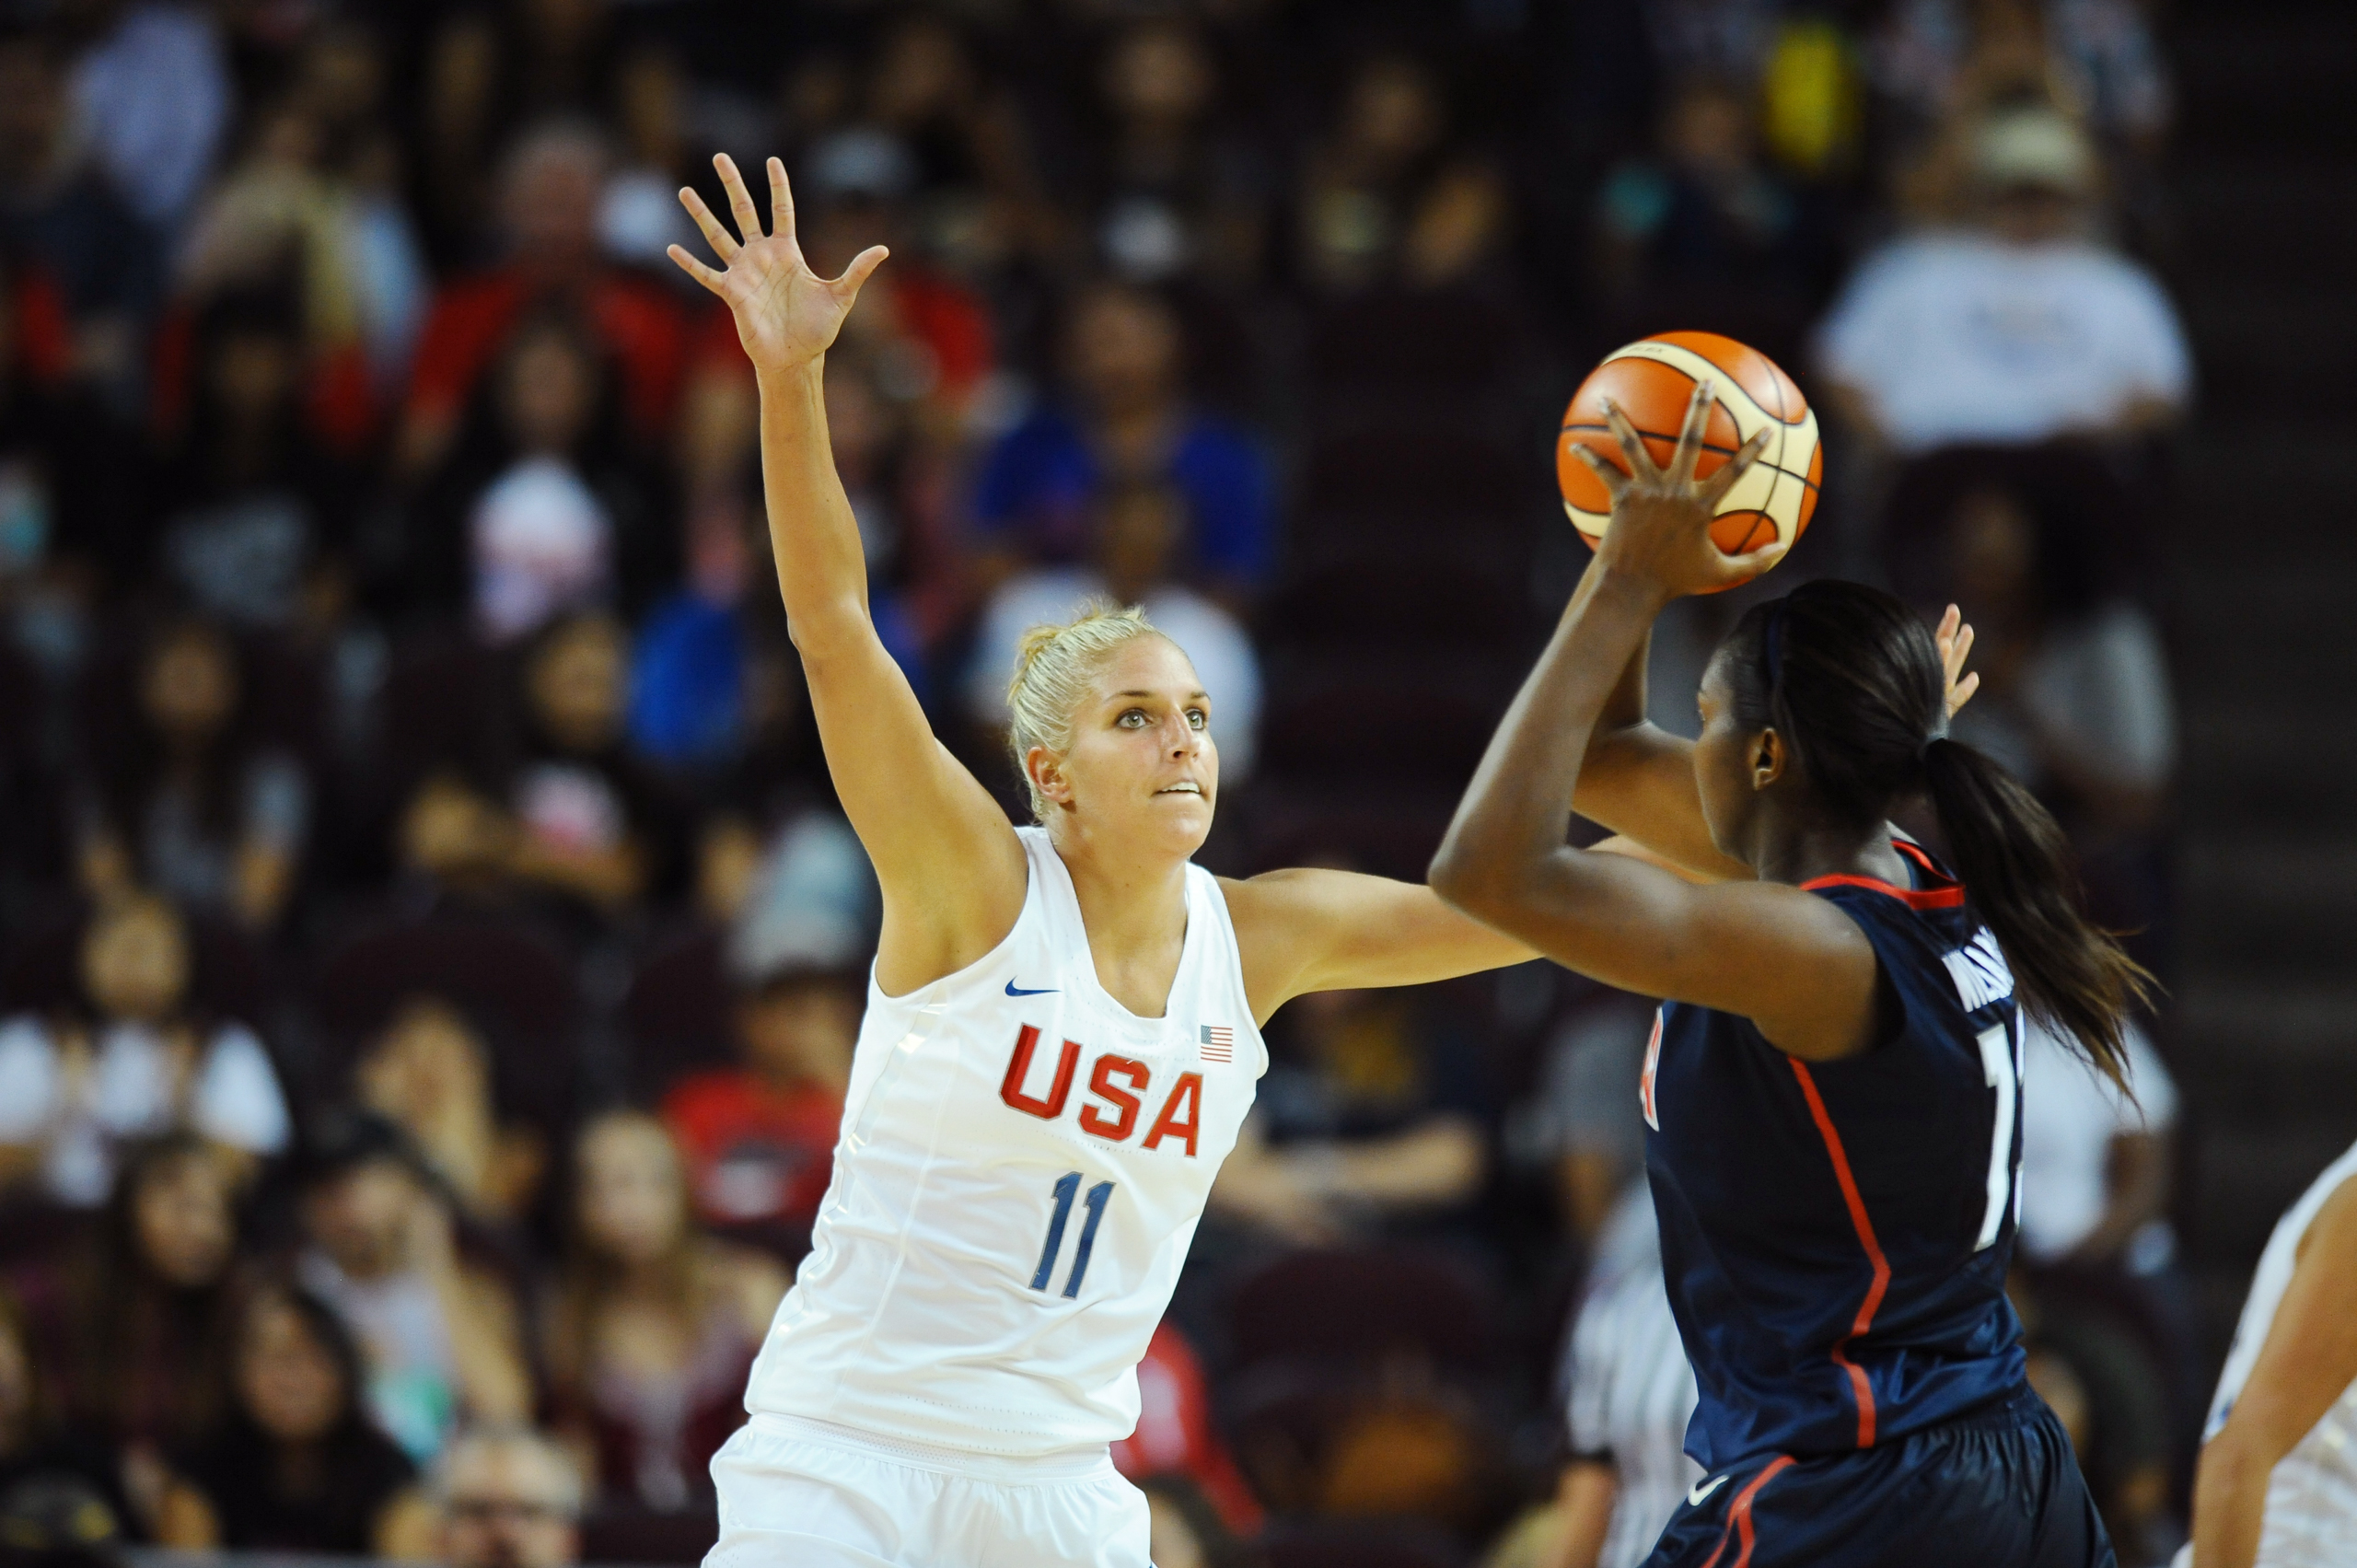 <strong>Elena Delle Donne, Basketball, USA</strong>The 2015 WNBA MVP makes her Olympic debut on a team favored to win its sixth straight gold. In London, Team USA's average margin of victory was 34.4 points.